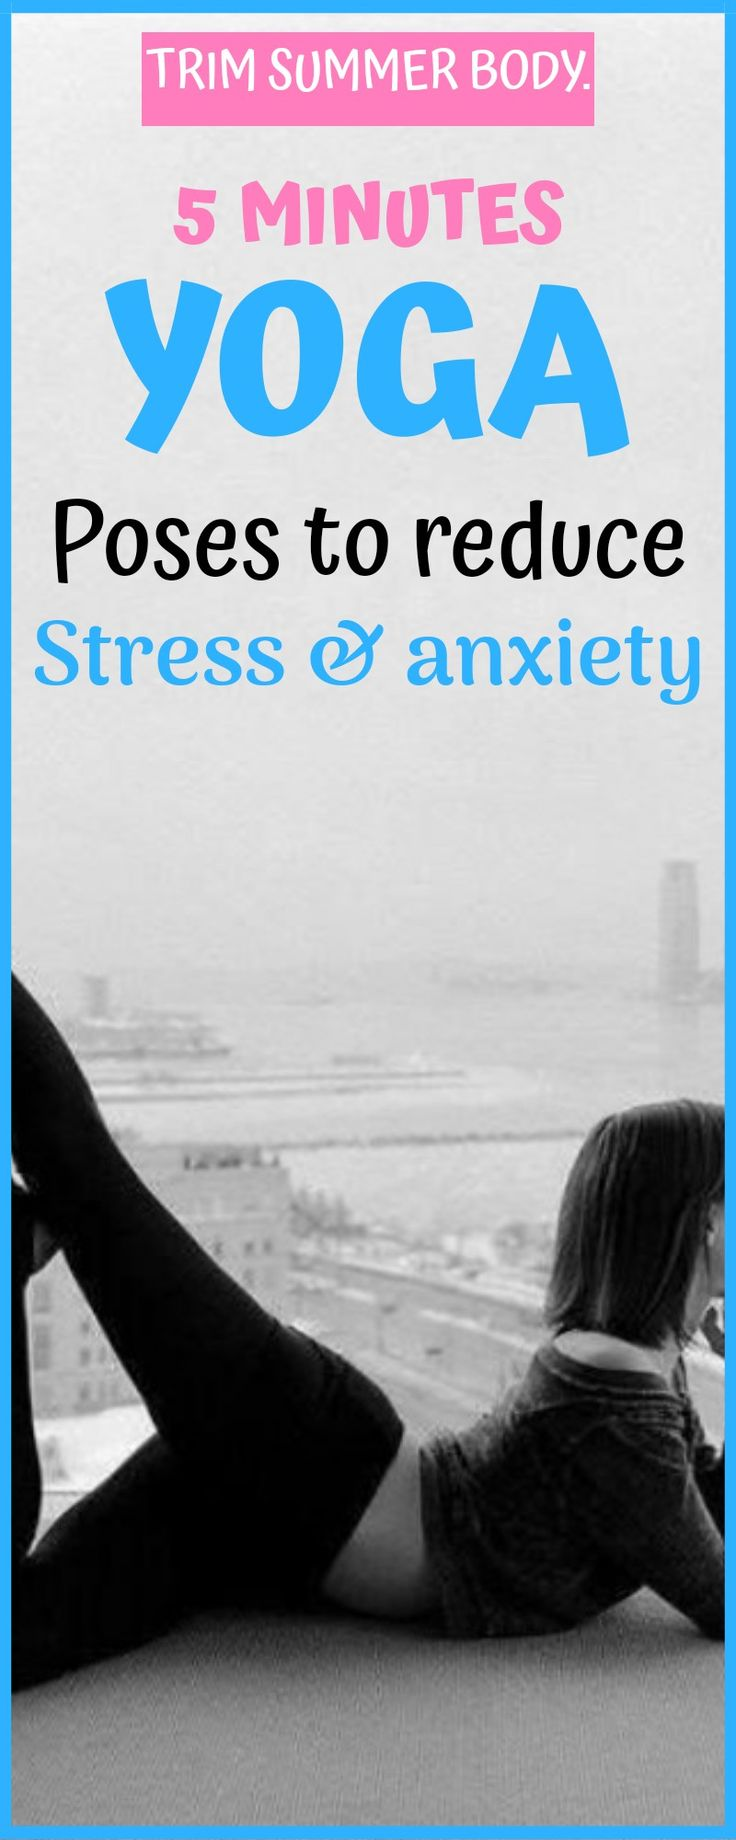 yoga for stress, yoga poses for stress and anxiety relief.